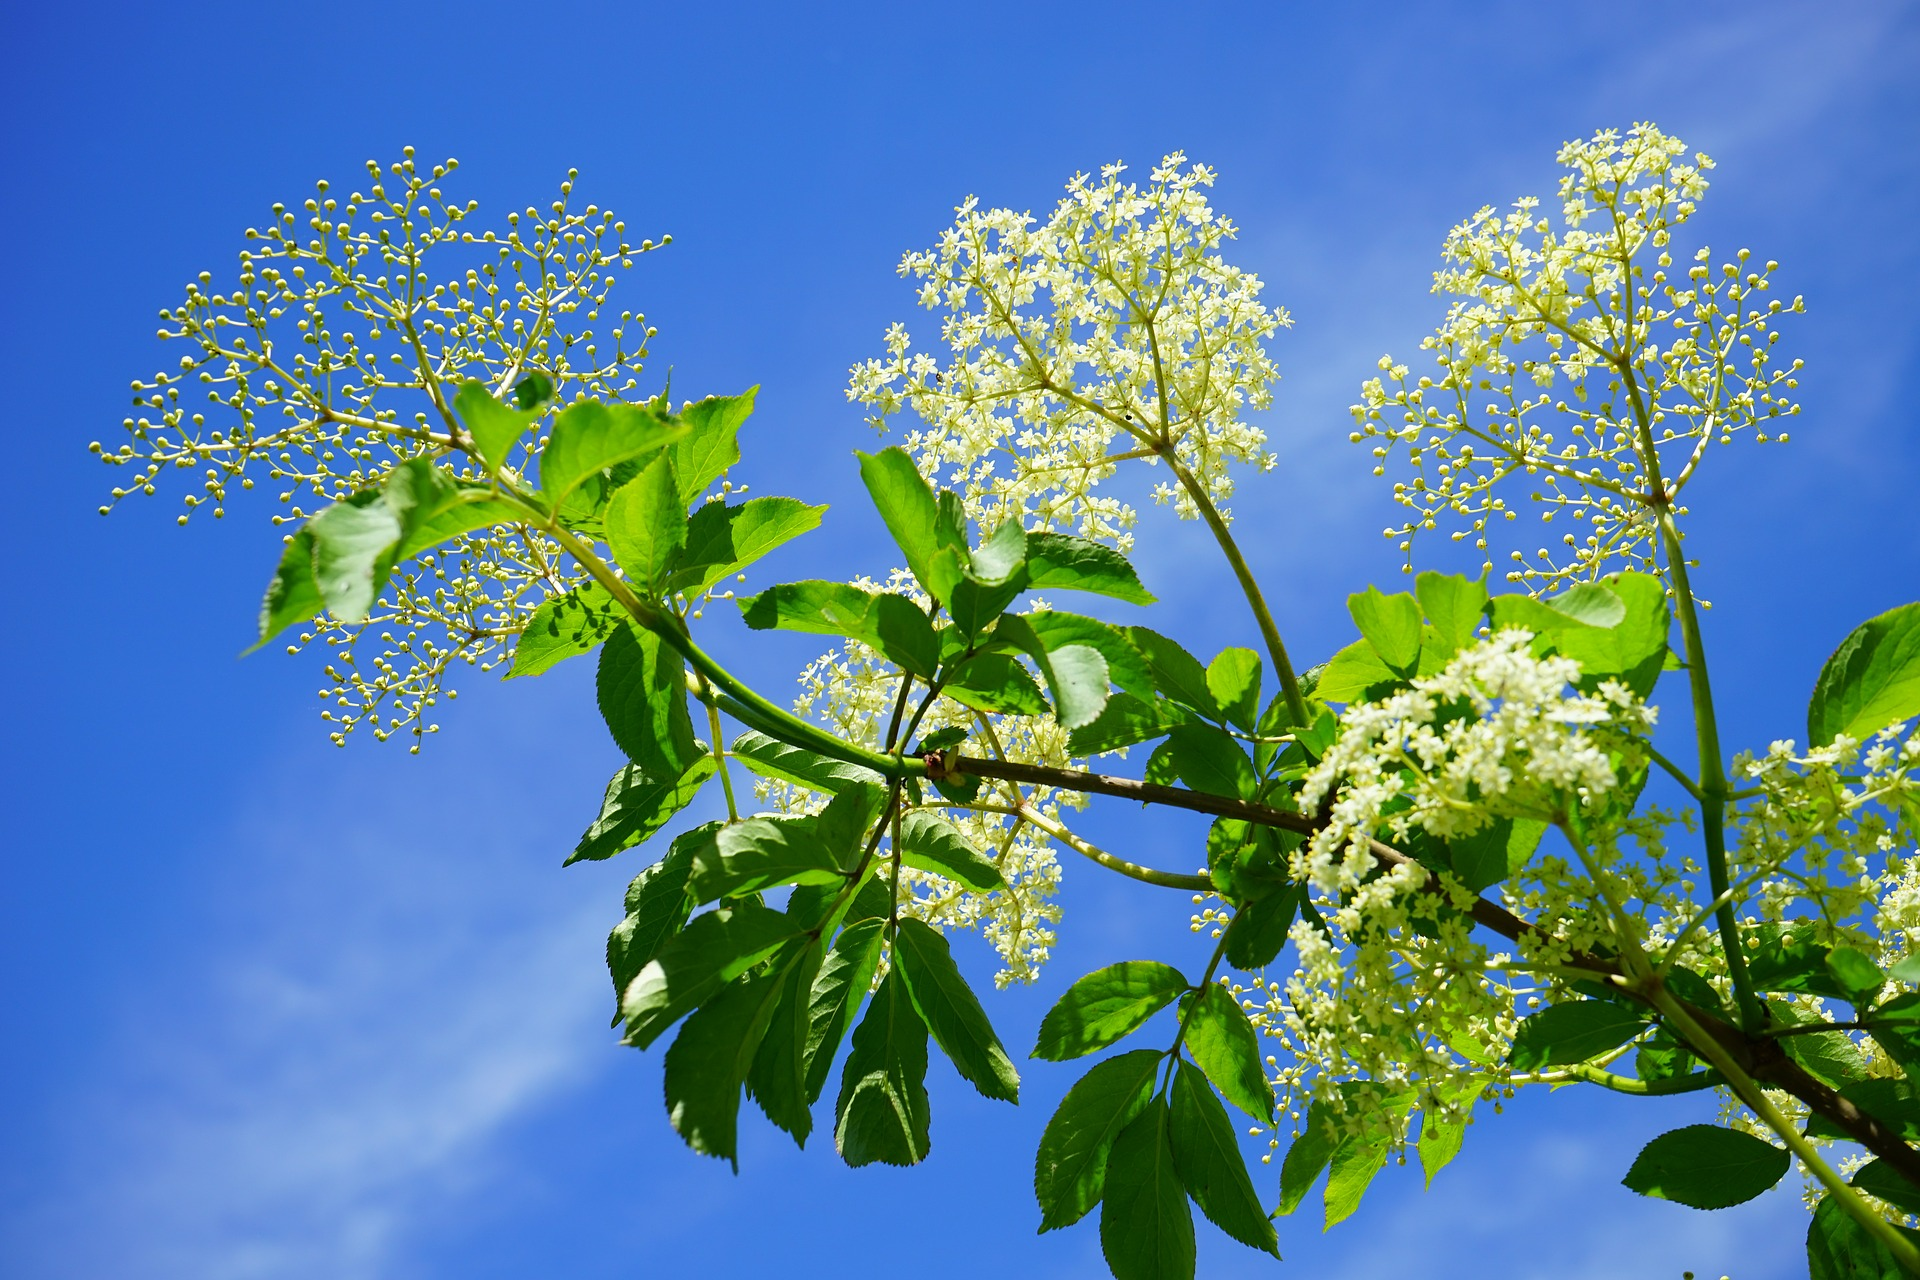 white elderberry blossoms and leaves against a blue sky